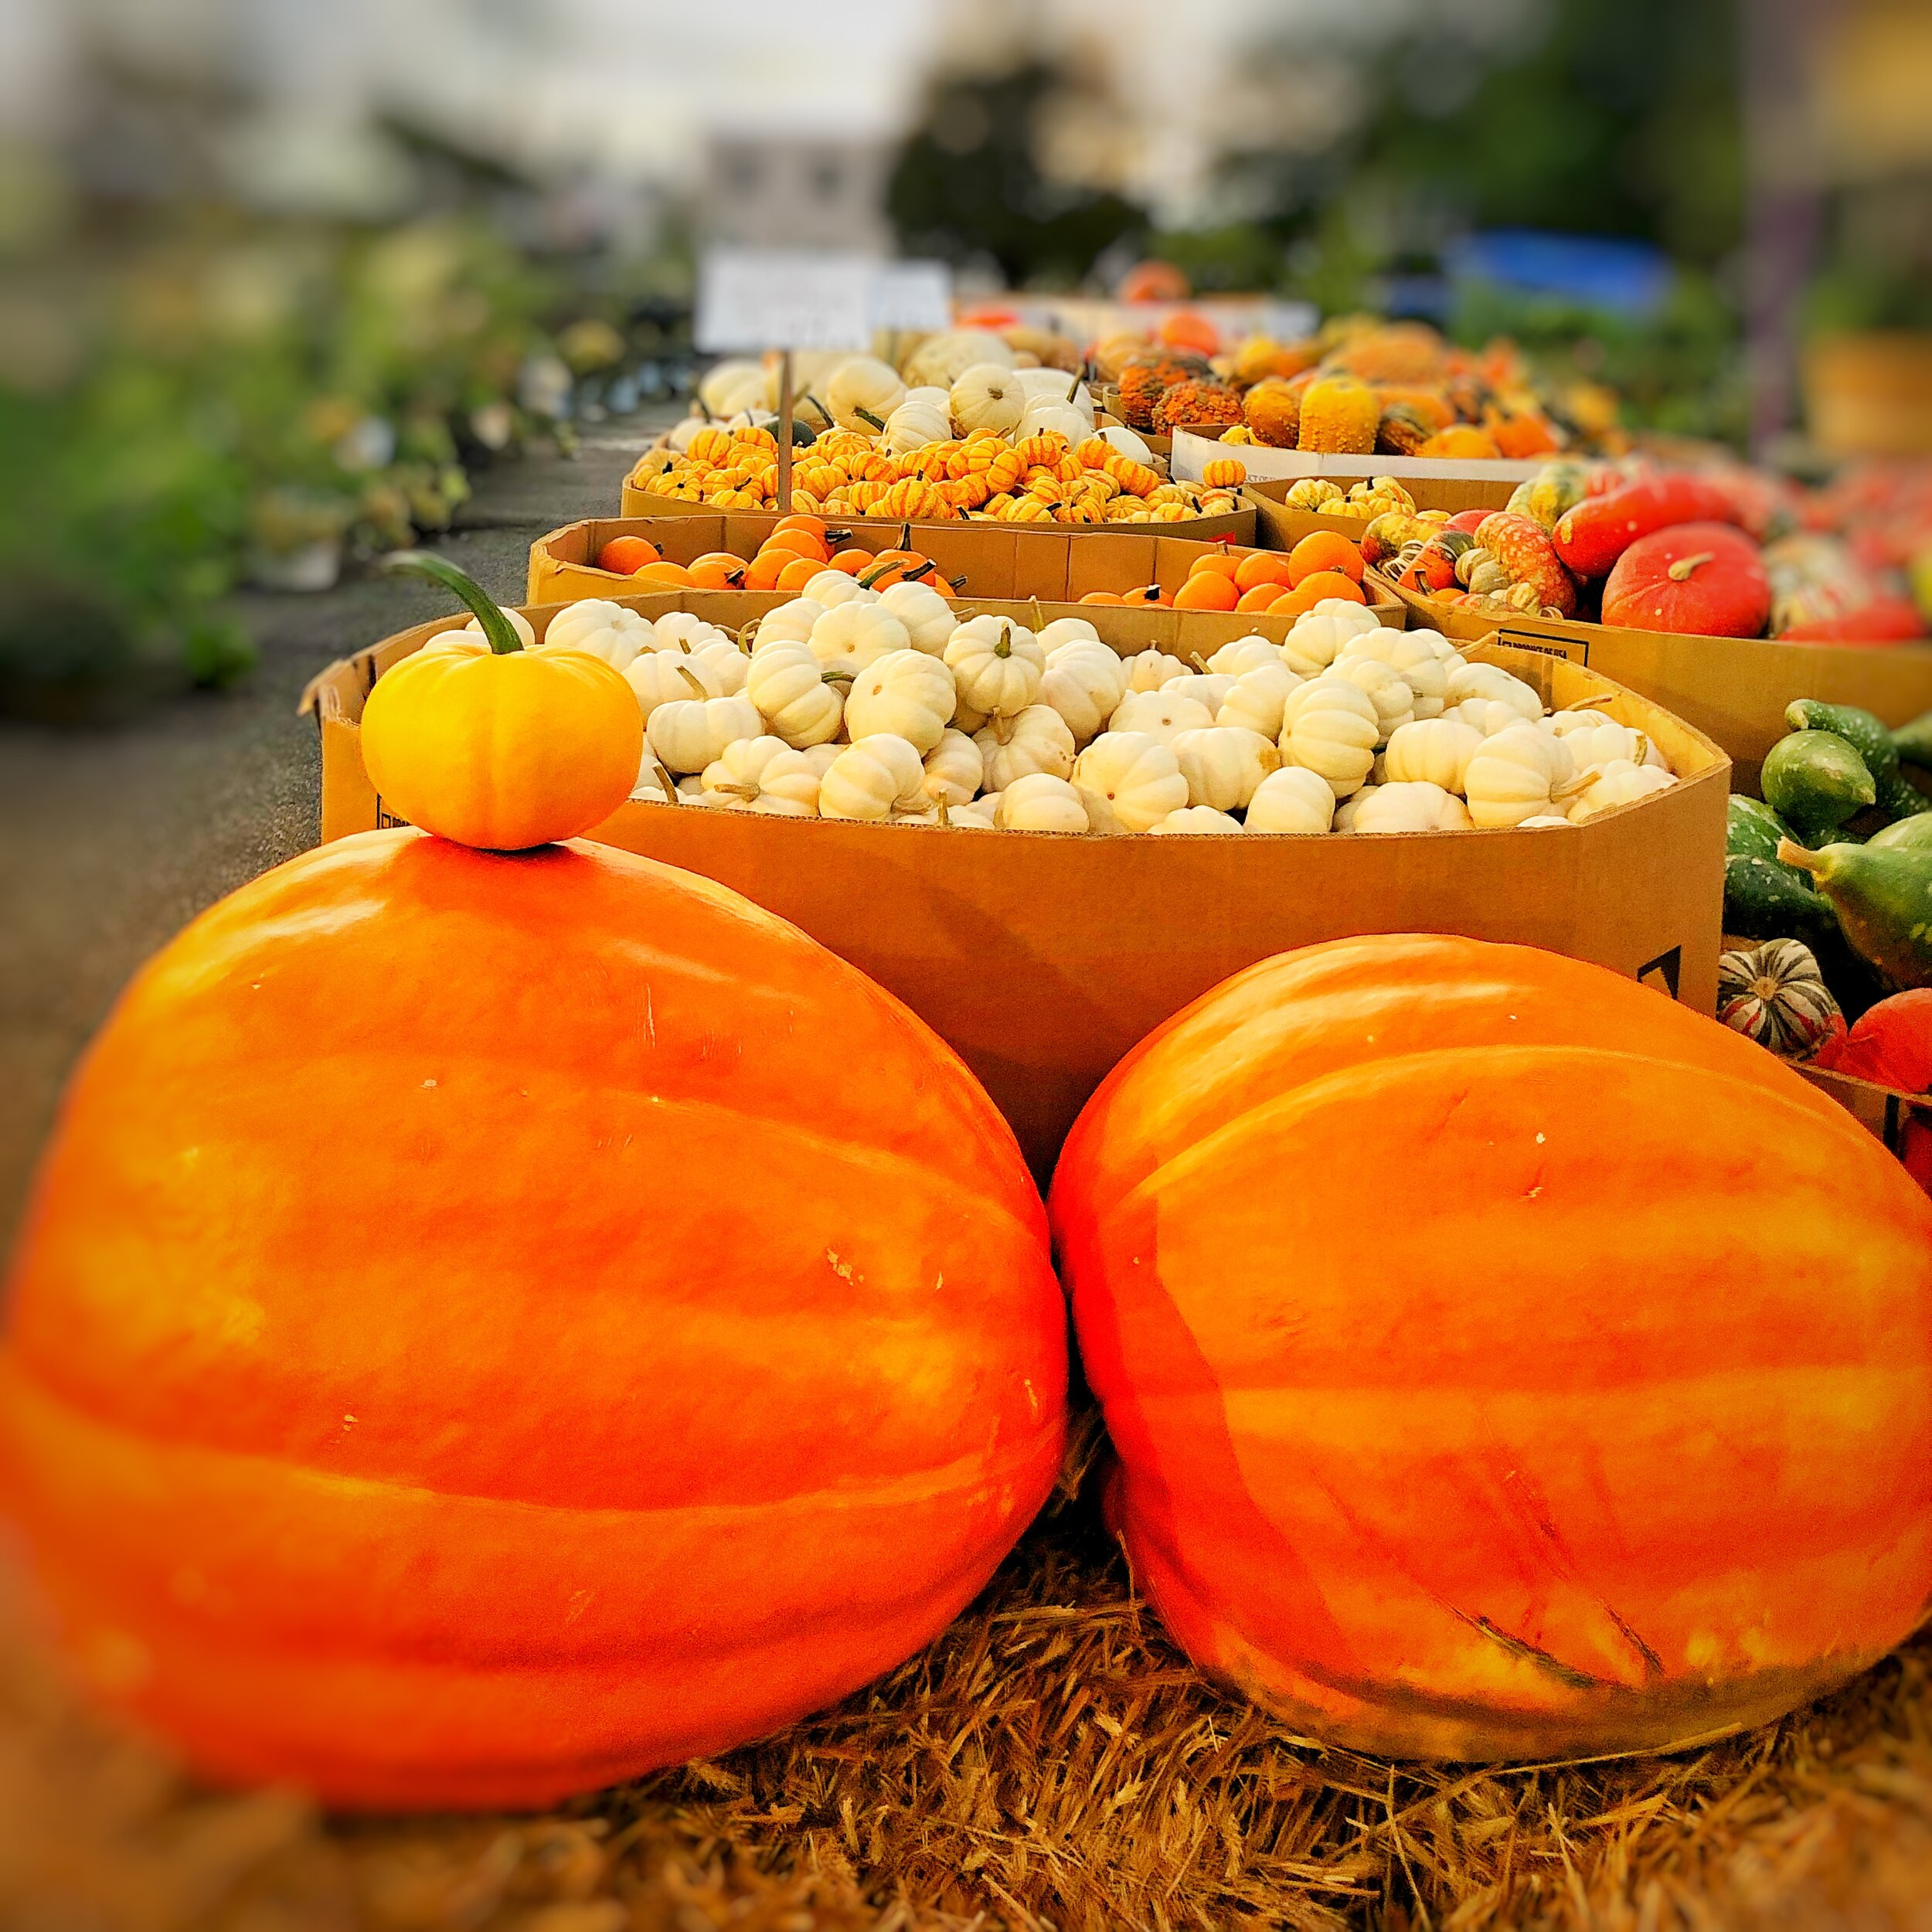 Fall is here! Enjoy the colors of the season with pumpkins, gourds and more.